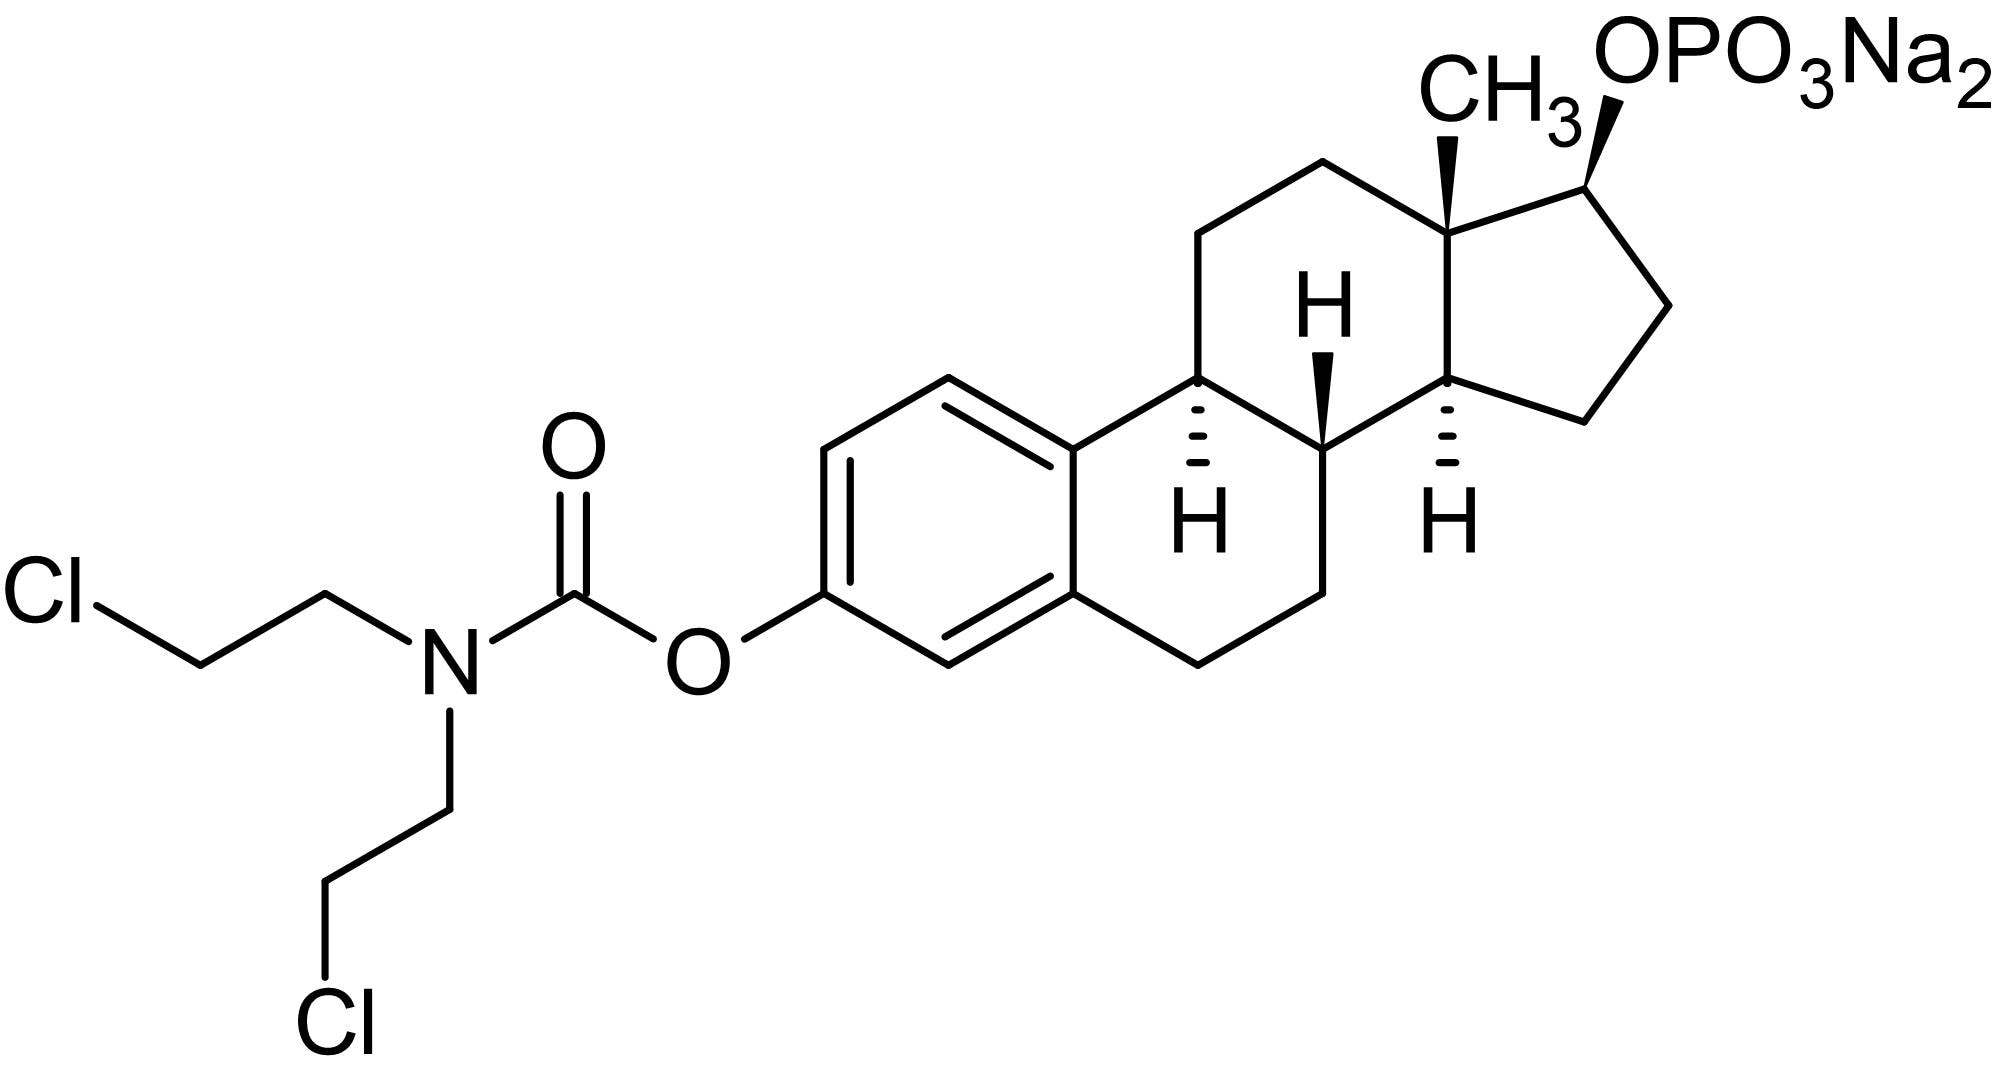 Chemical Structure - Estramustine phosphate sodium, antimitotic, antitumour agent (ab142747)